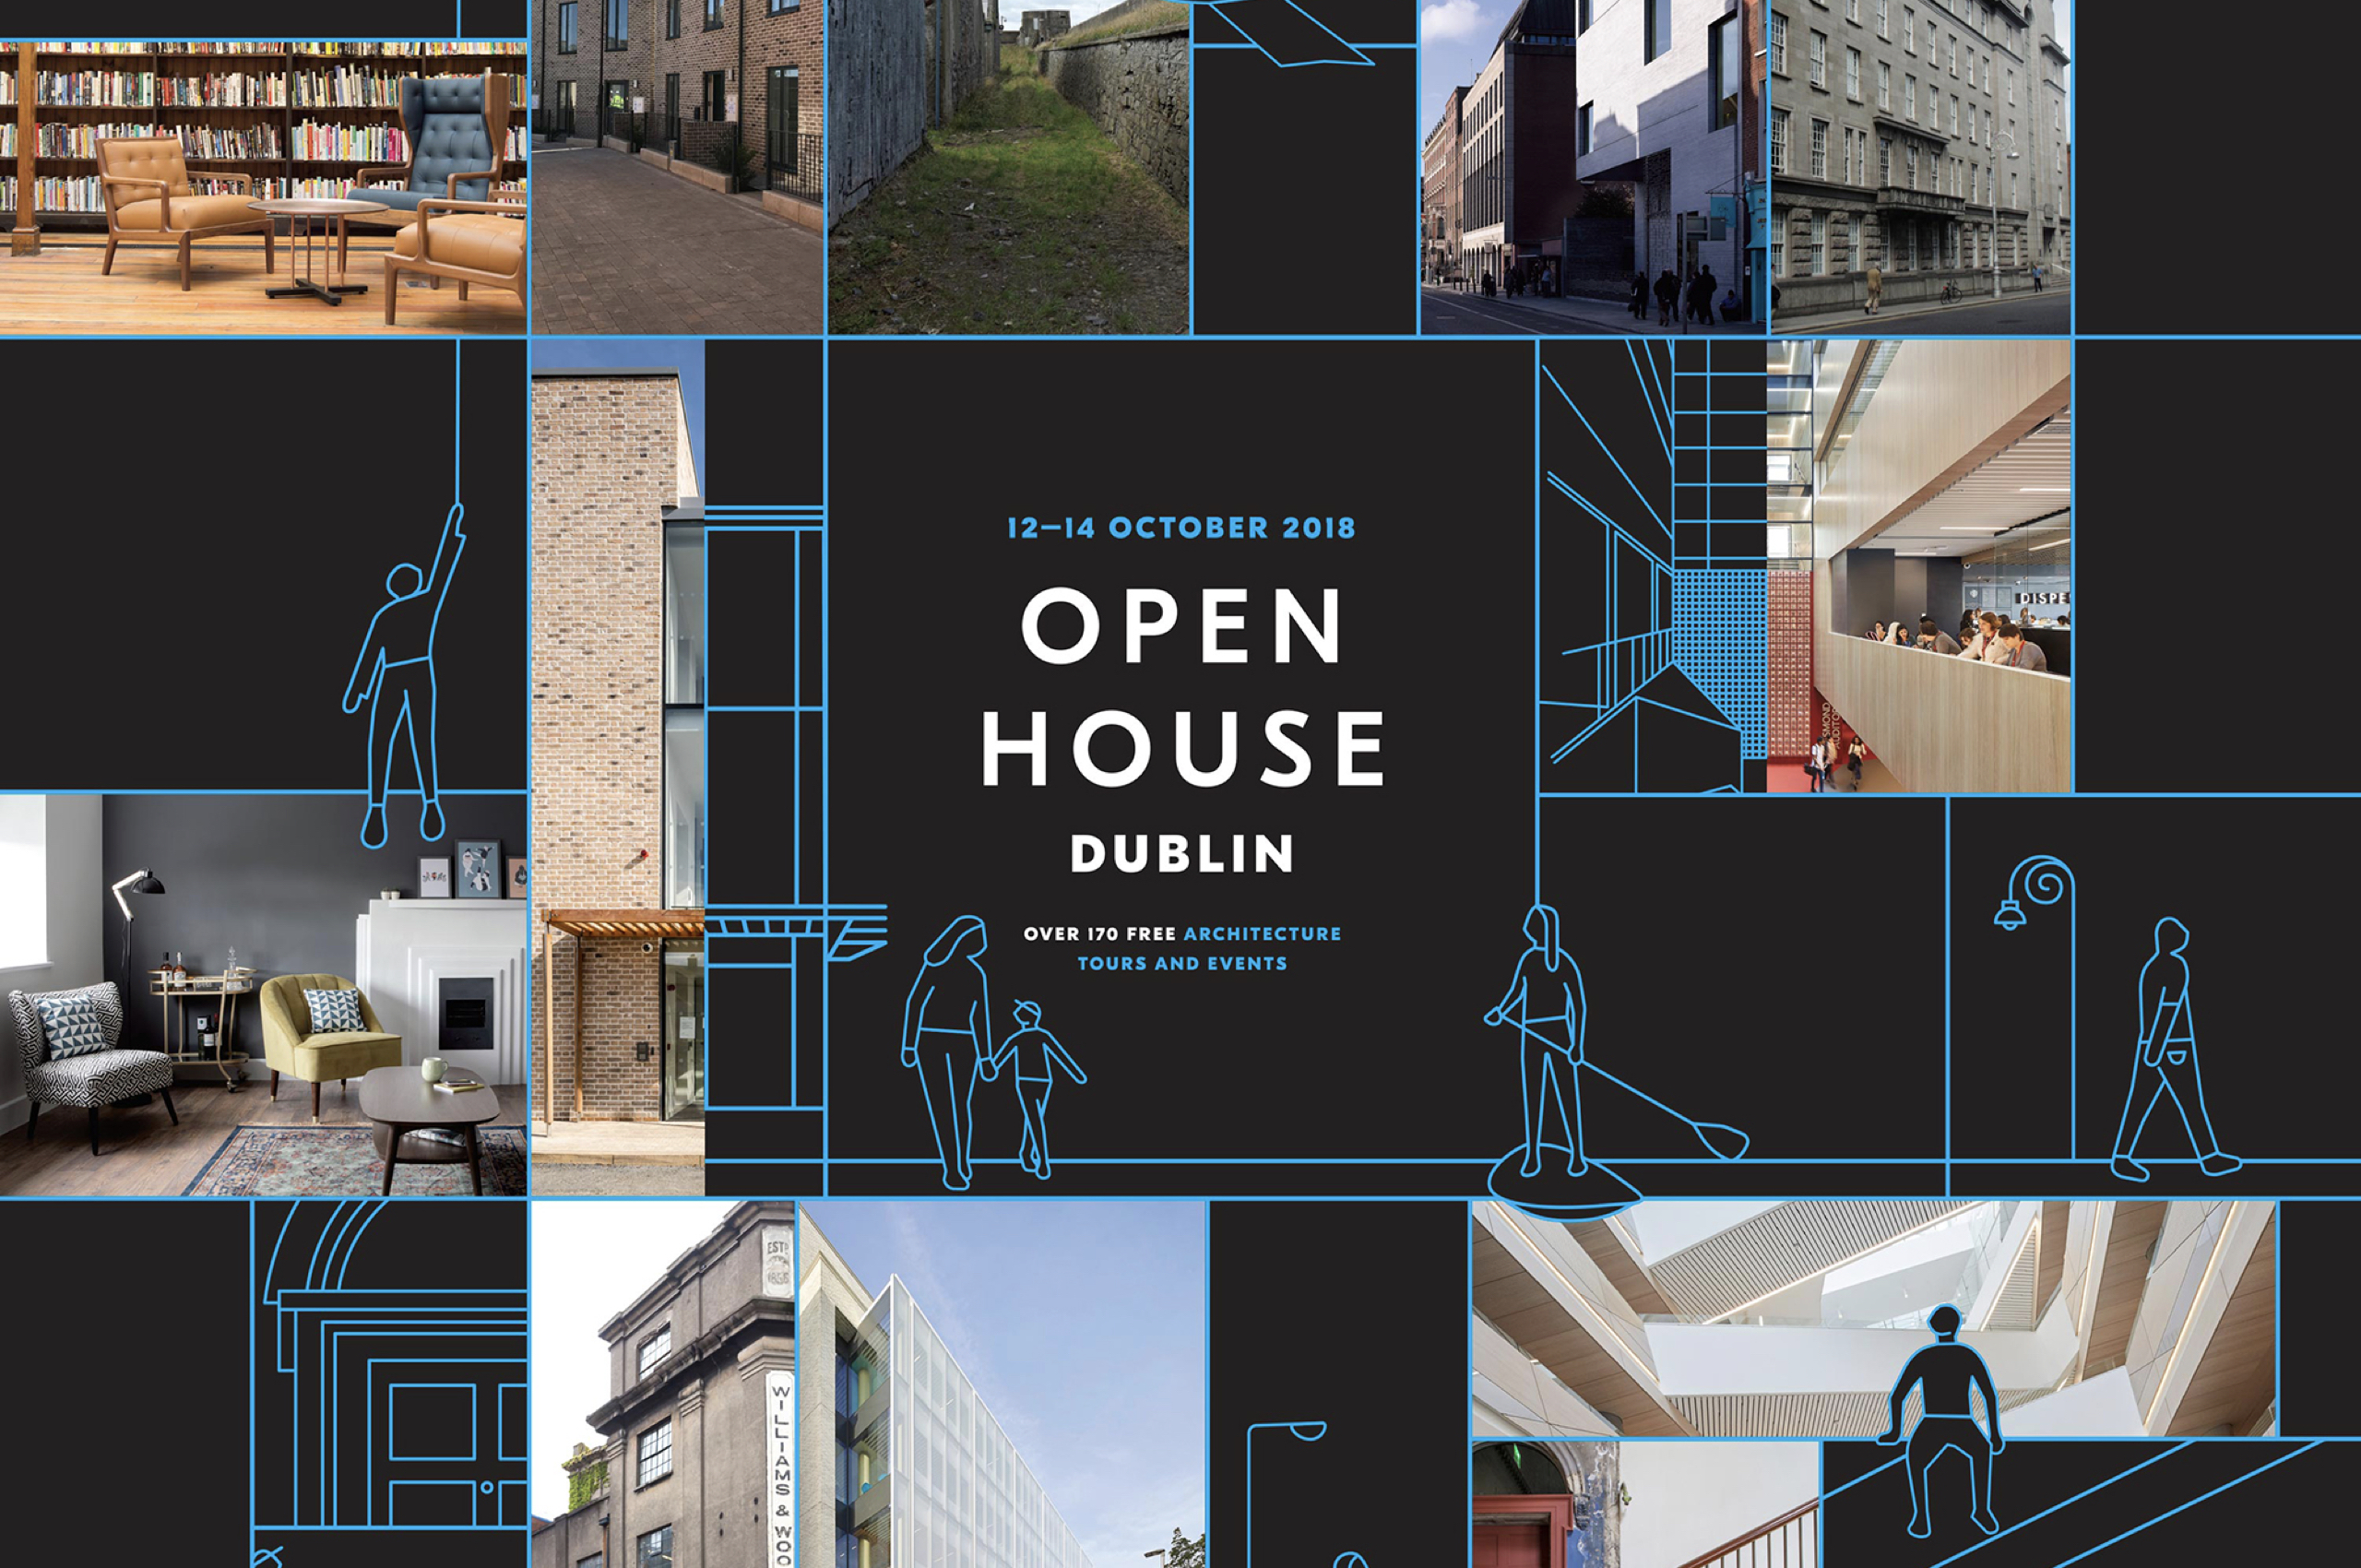 Cover image: Open House Dublin